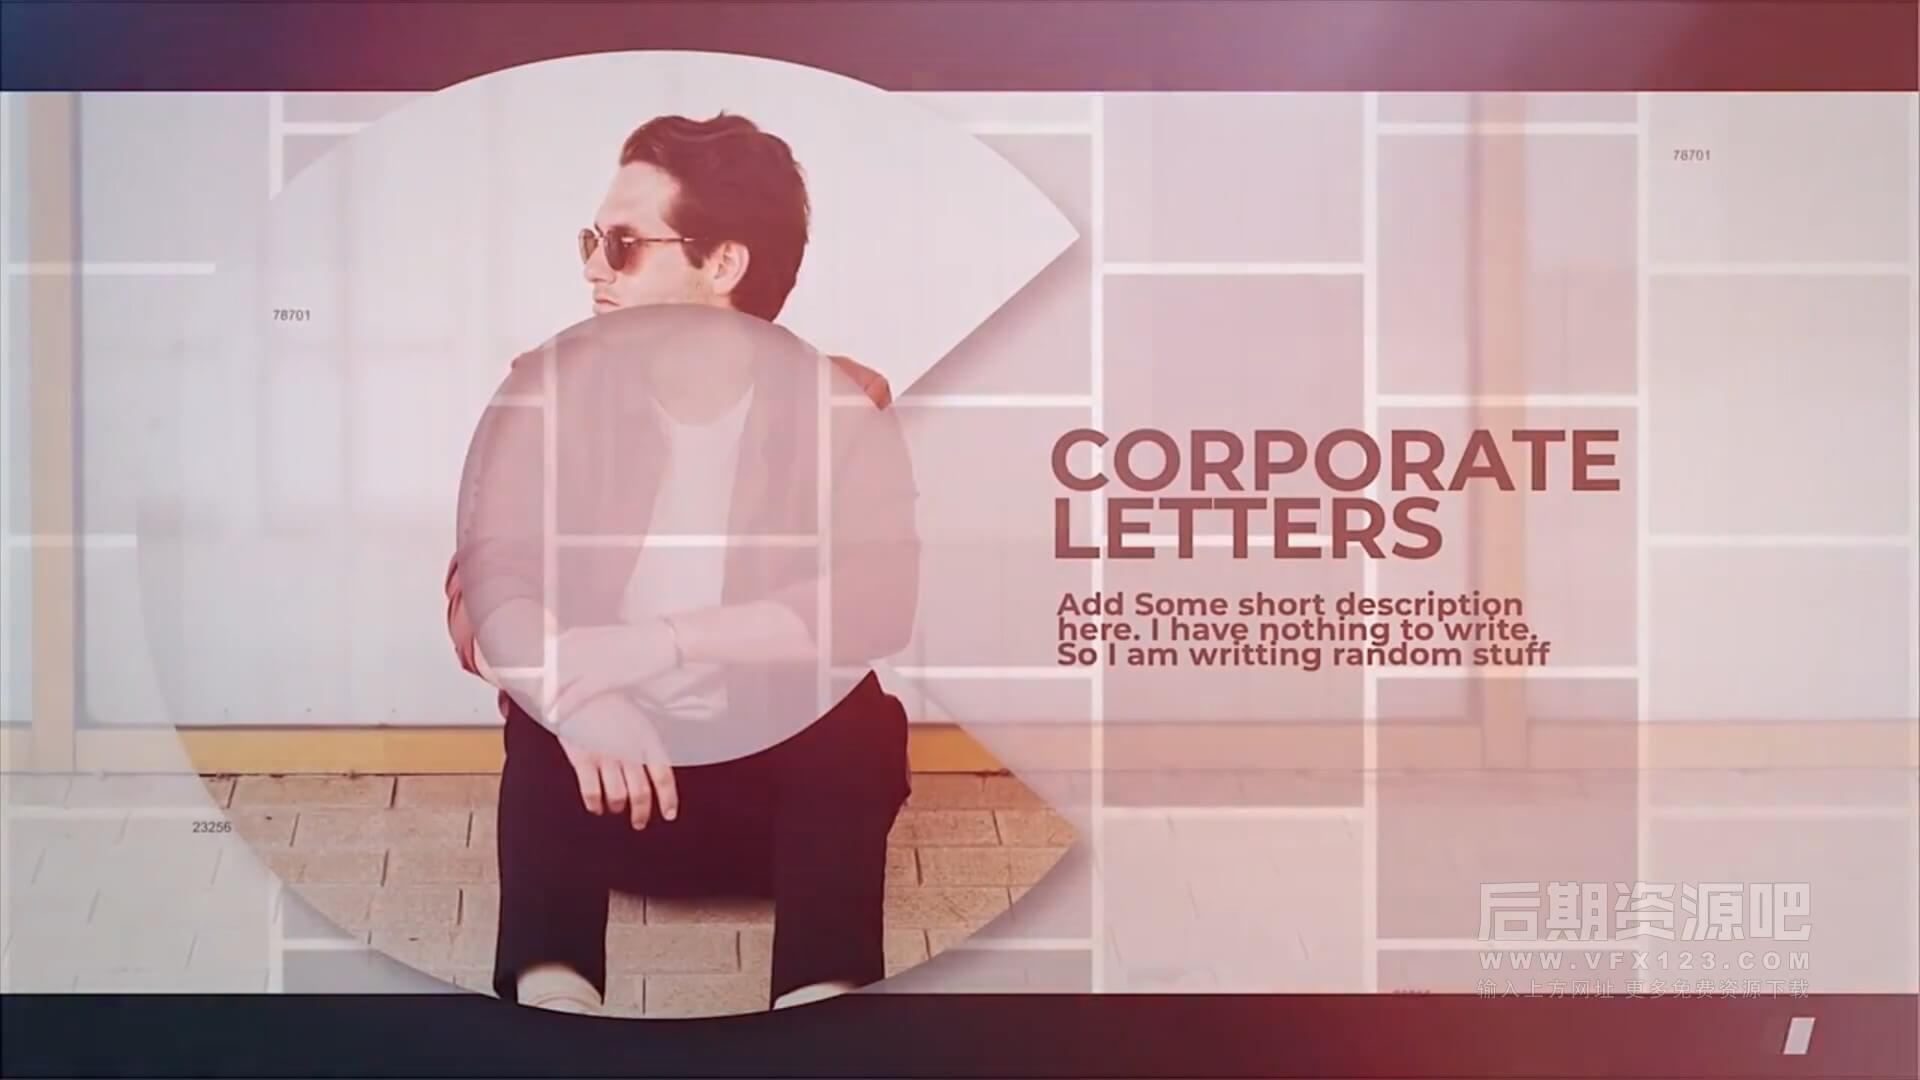 fcpx主题模板 商务风格公司推广宣传片头模板 Corporate Letters